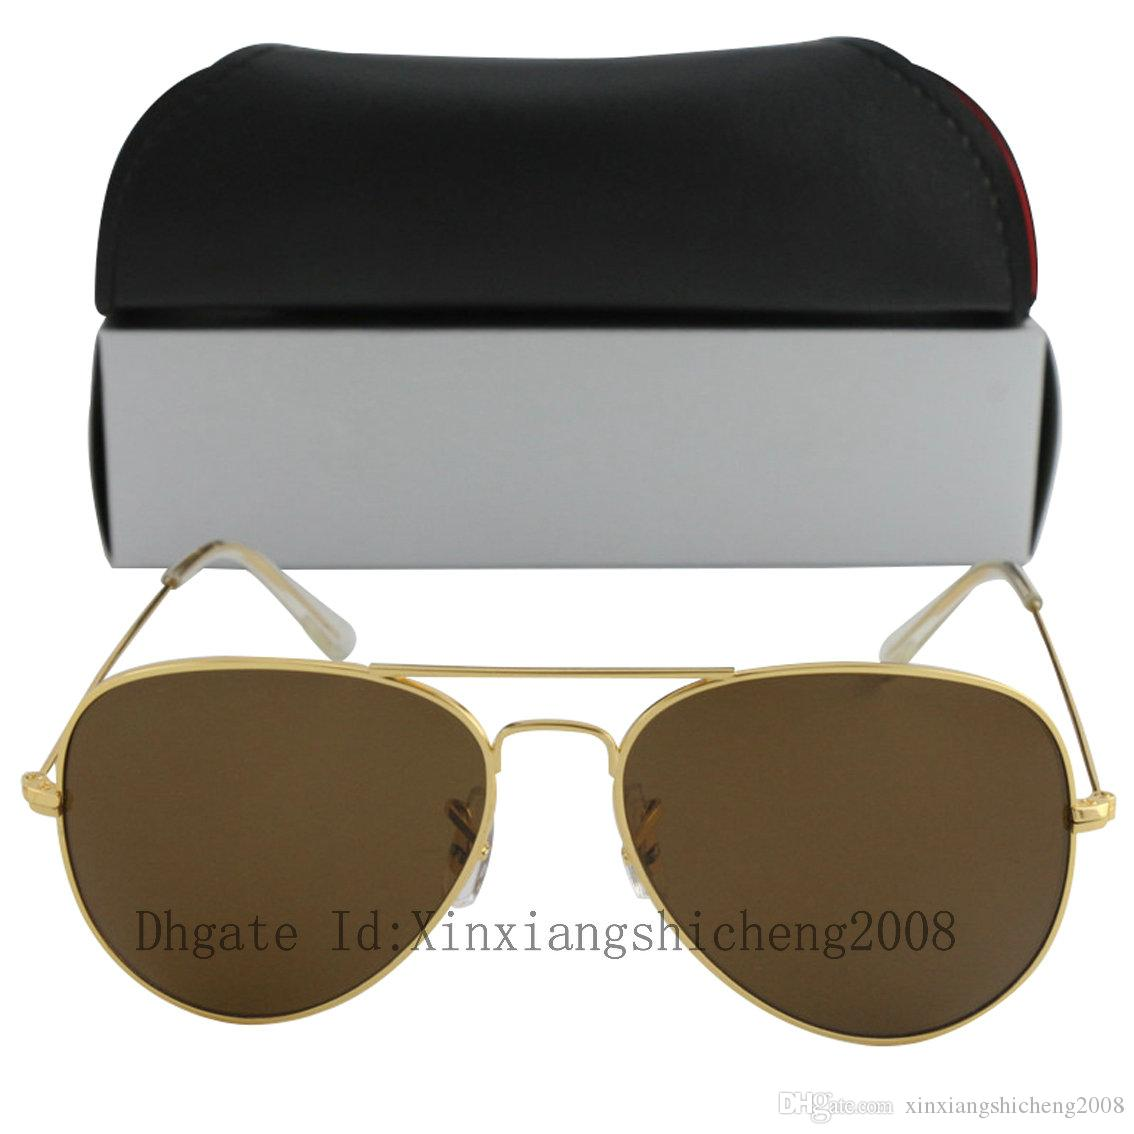 Free shipping Wholesale price Hot 100pcs DHL Ship gold brown lens Men Women Designer Sunglasses 58mm and 62mm With Box Case